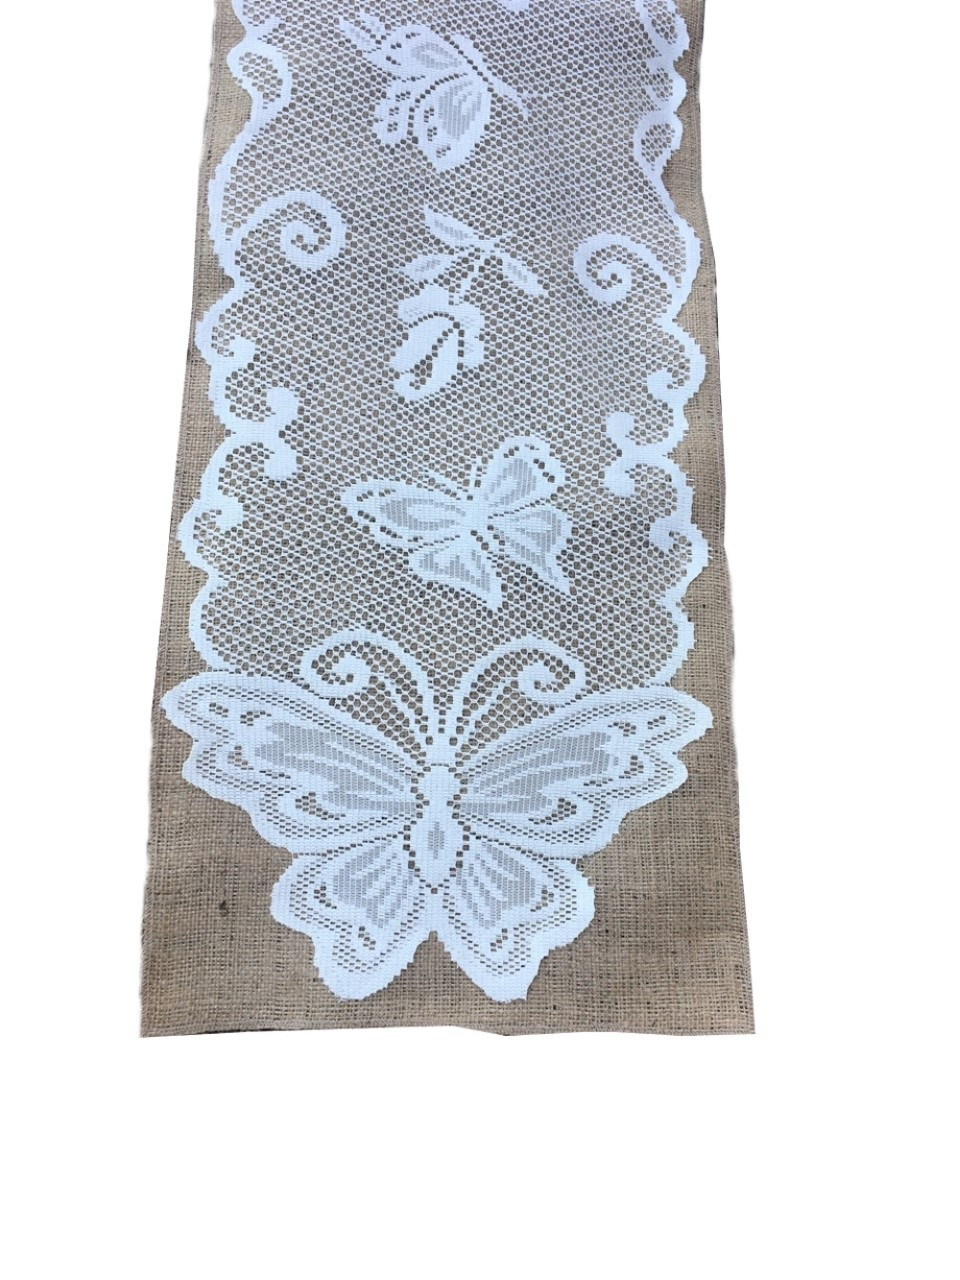 "Burlap Table Runner With Lace - Butterfly Design 14"" x 96"""